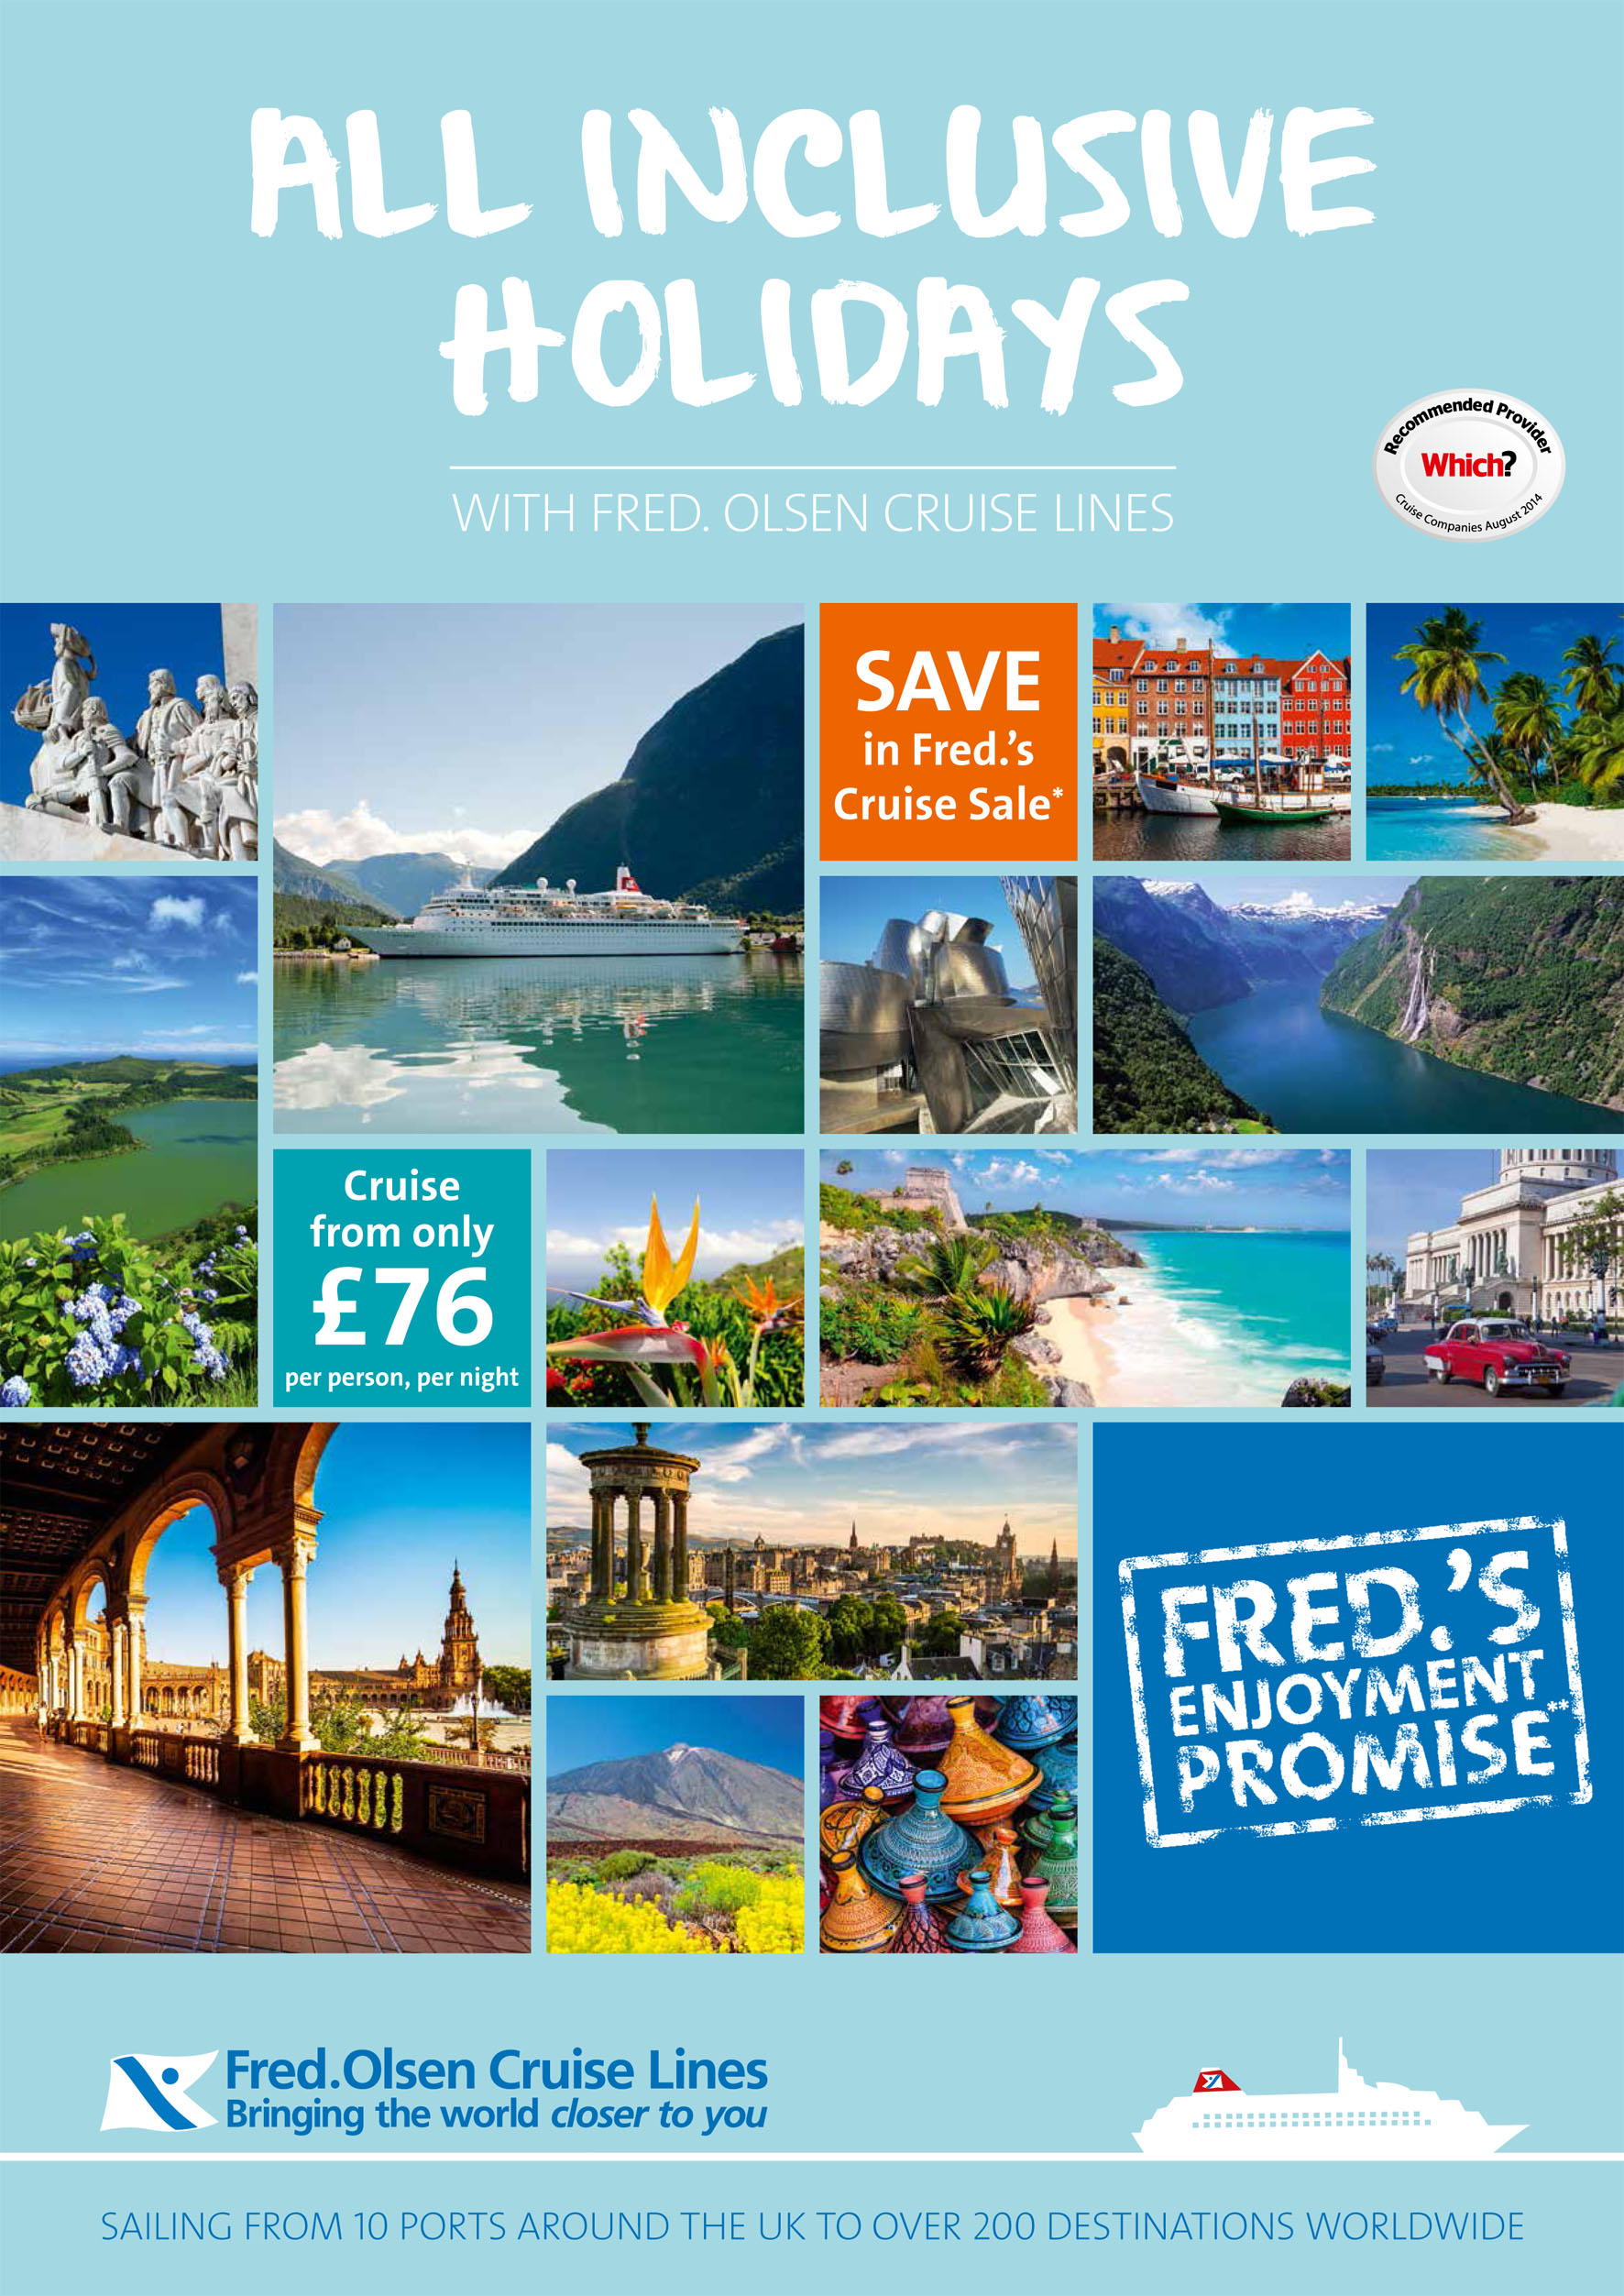 Cruisemiss cruise blog a cruise blog with a difference for Best caribbean vacations in december